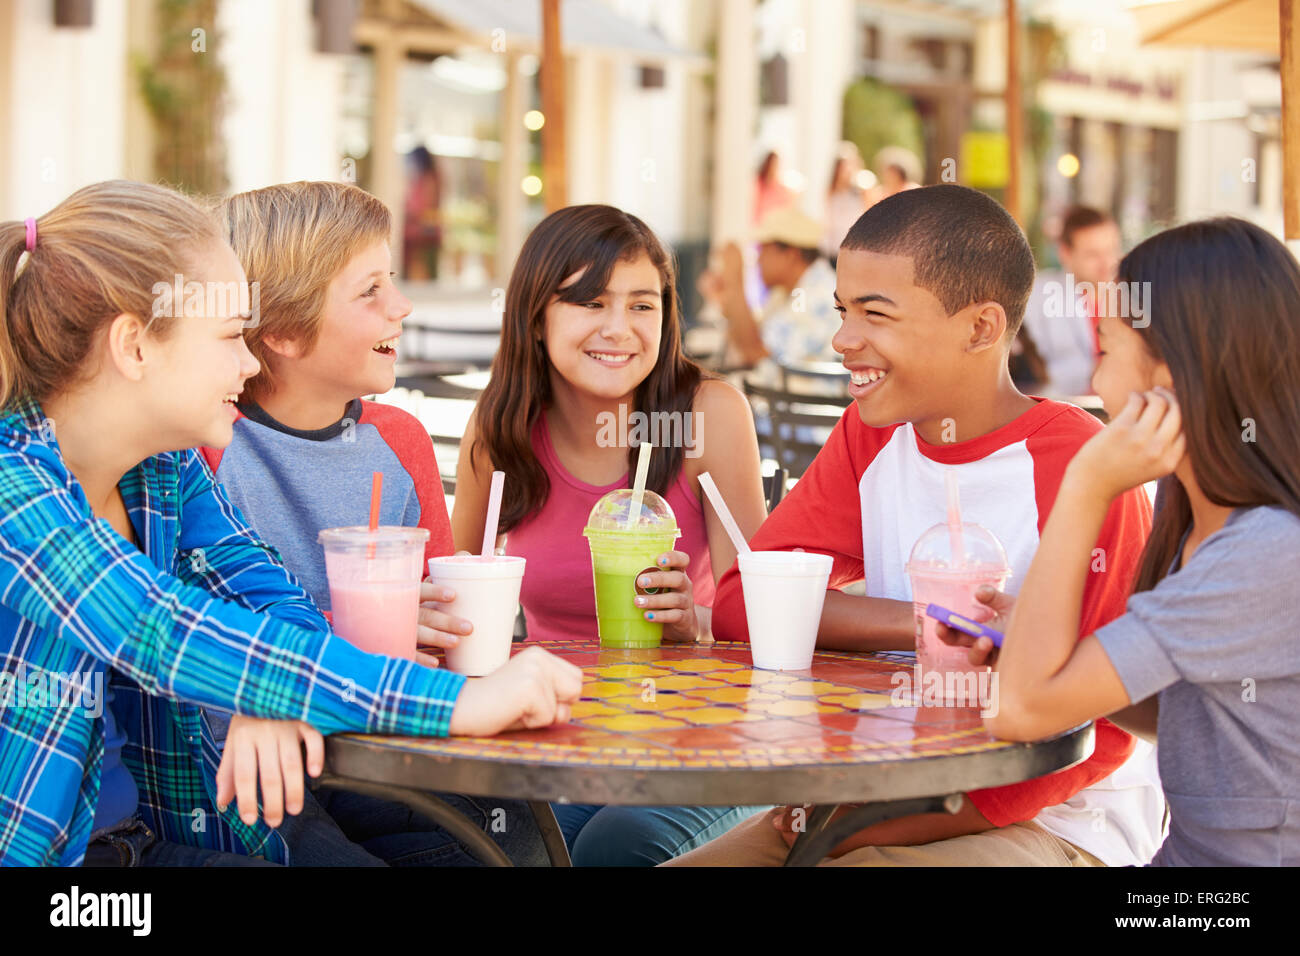 Group Of Children Hanging Out Together In CafŽ - Stock Image